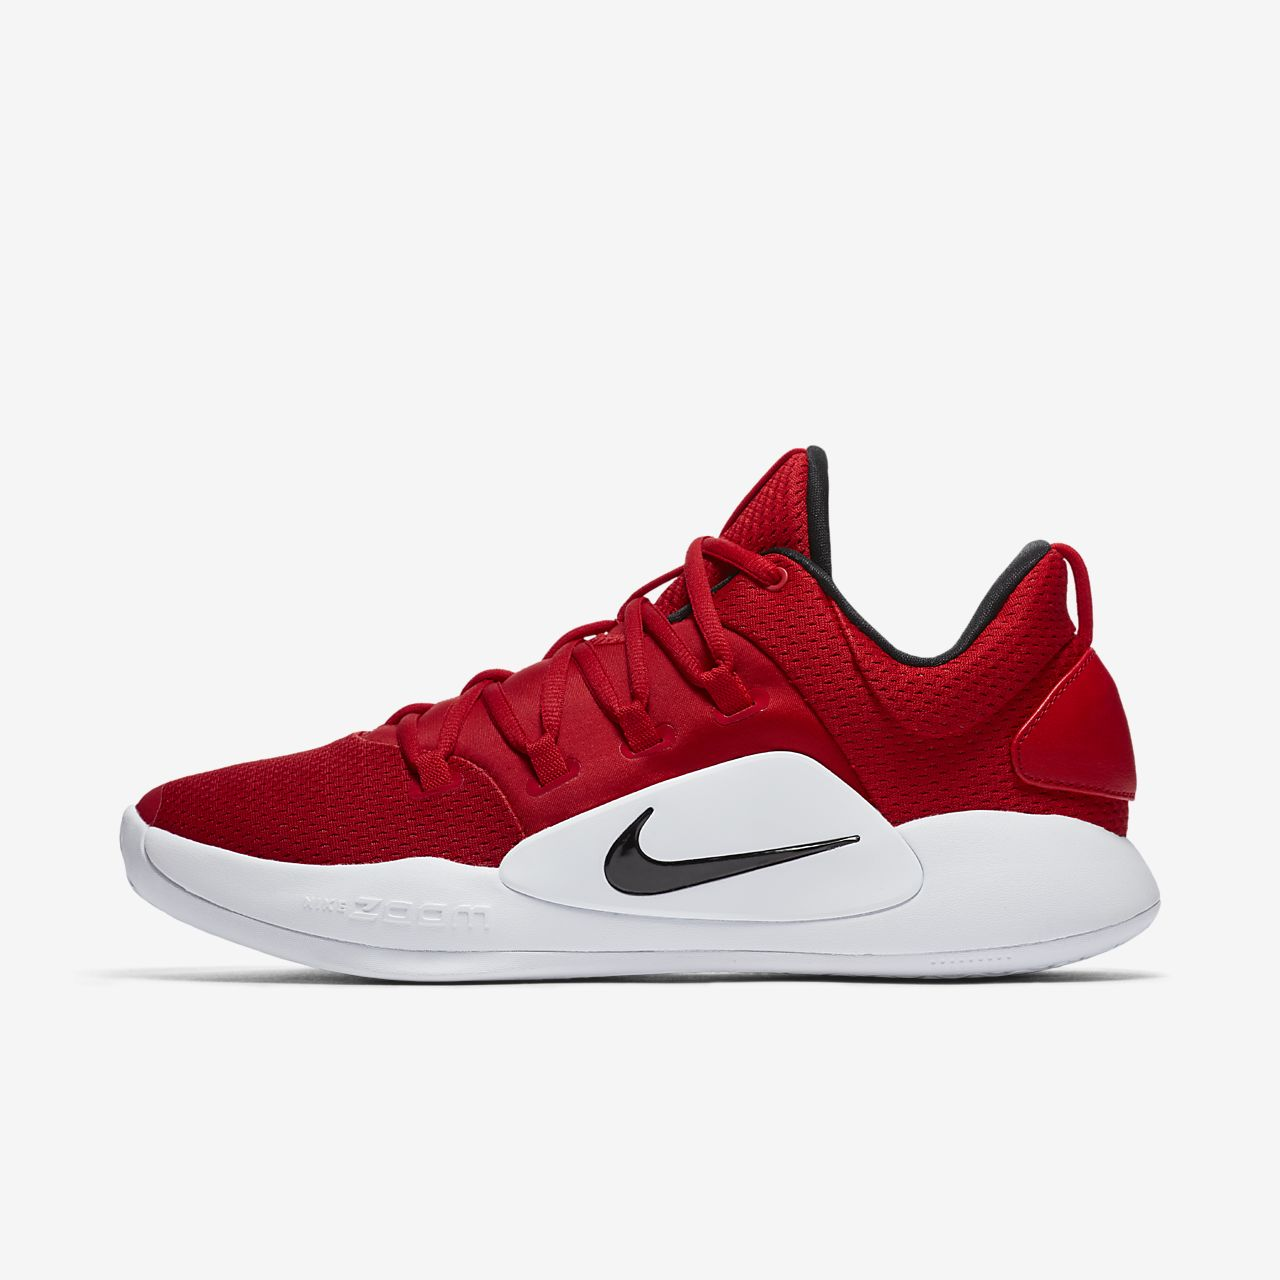 Nike Hyperdunk X Low (Team) Basketball Shoe